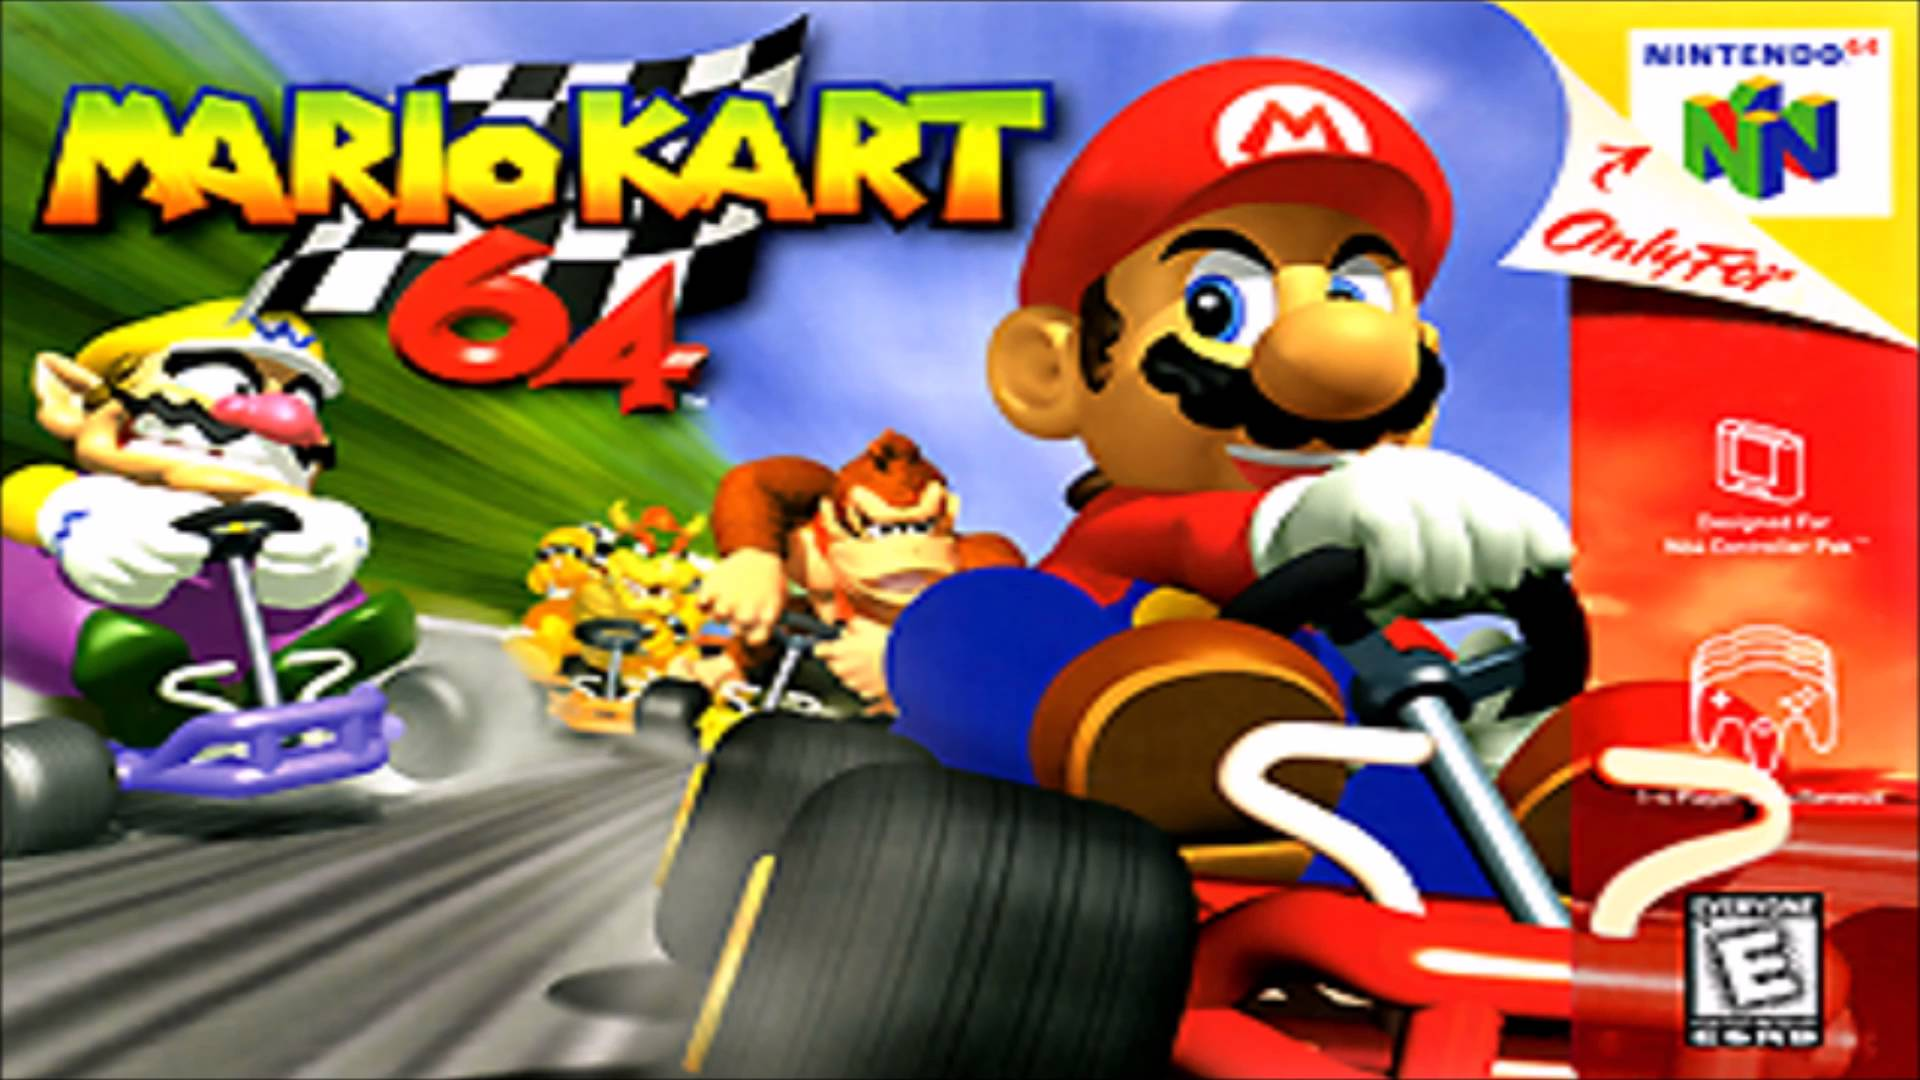 Mario Kart 64 on the Nintendo 64.